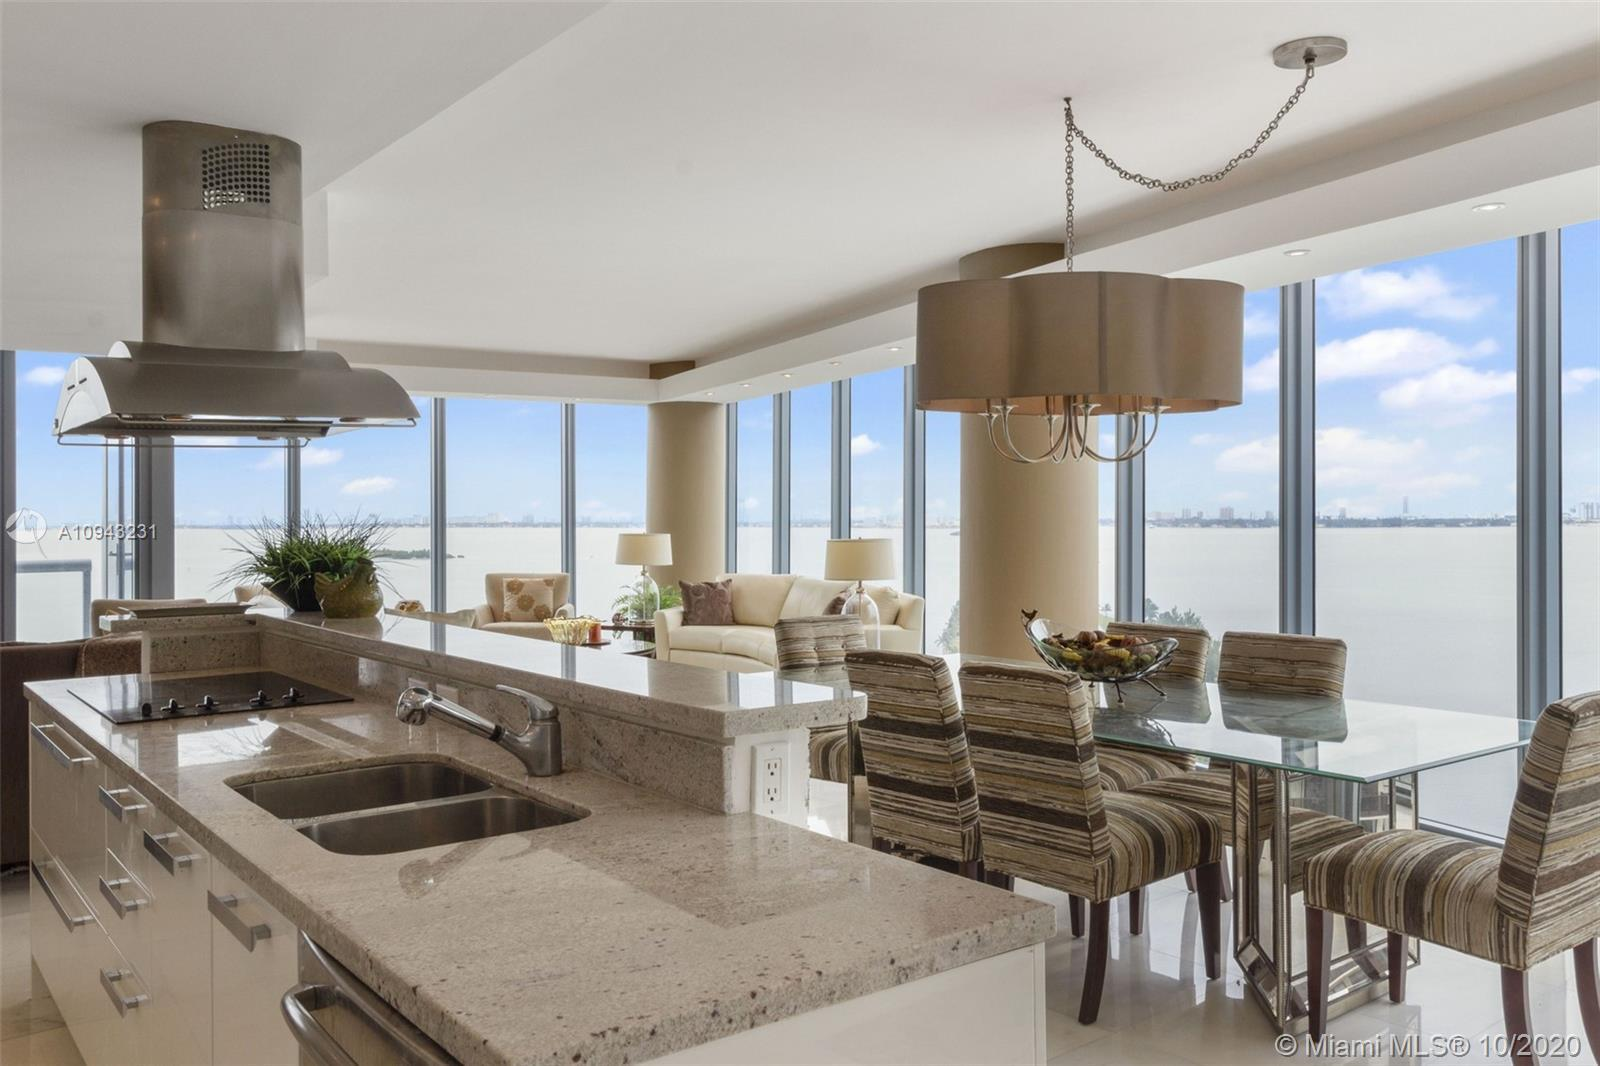 Best line in the building with extraordinary views of the Bay & Miami Beach. Beautiful Italian kitch